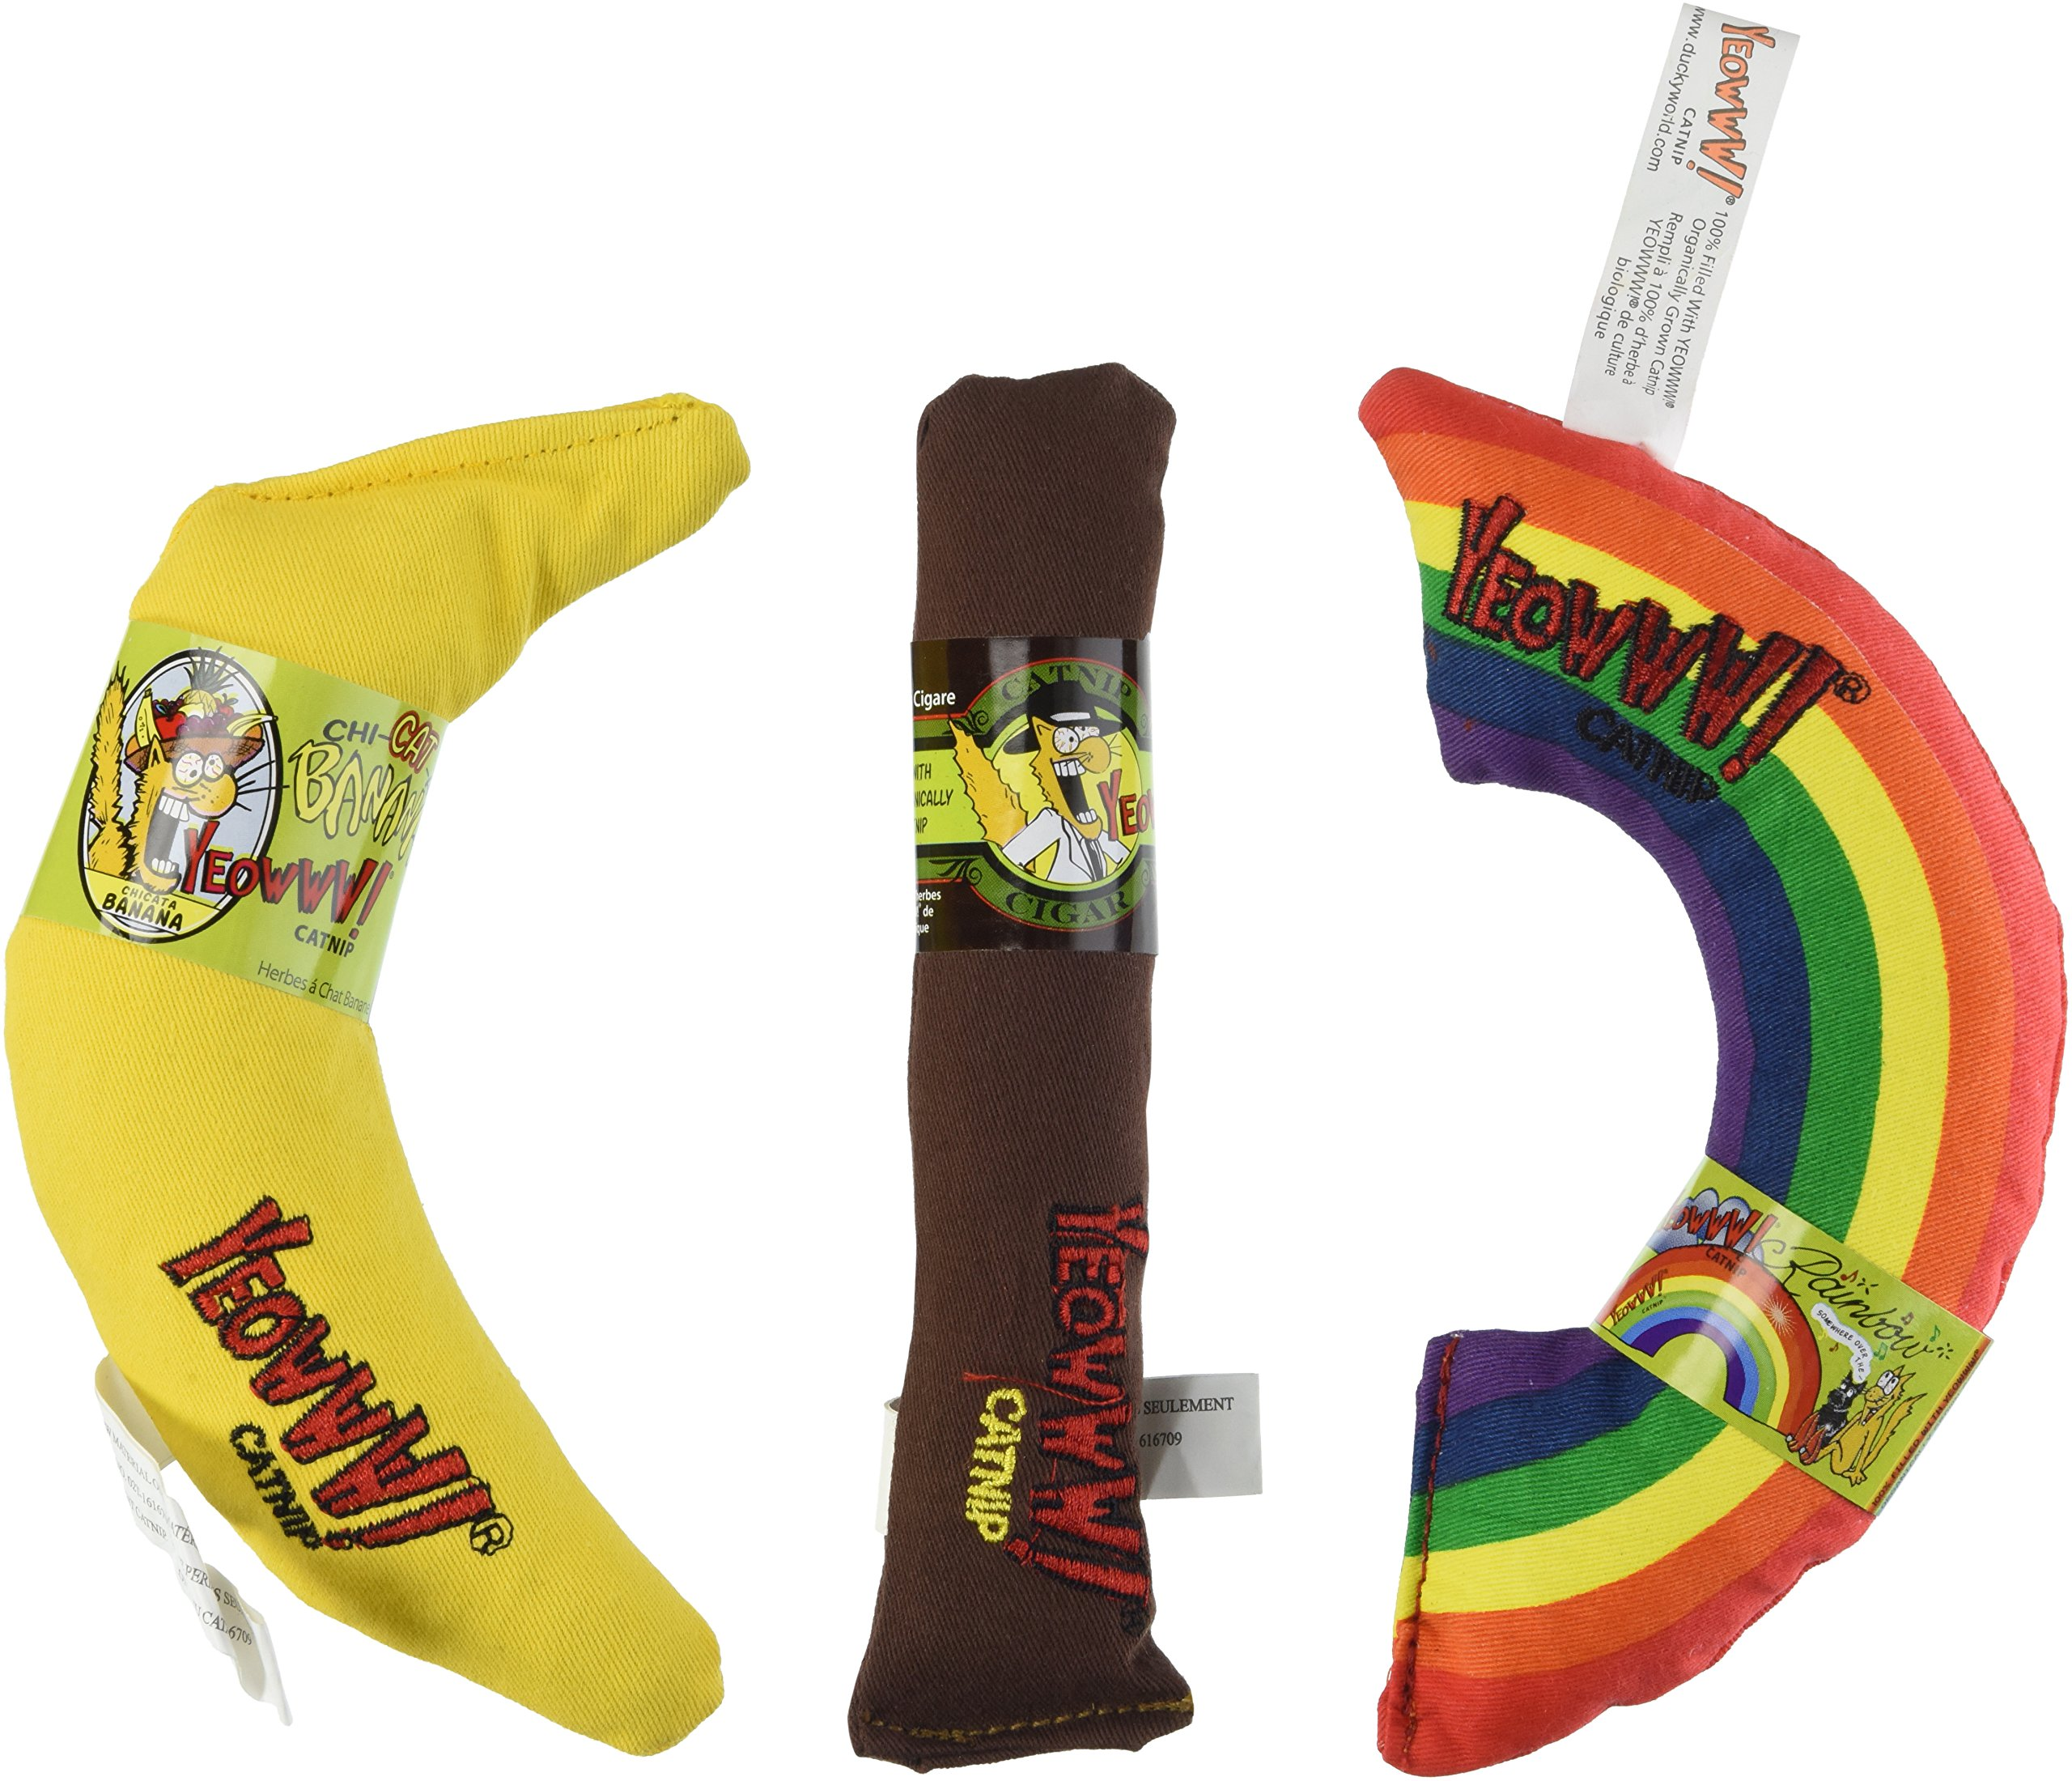 YEOWWW! CATNIP TOY VARIETY PACK ★ CIGAR & BANANA & RAINBOW ★ MADE IN USA by Yeowww!